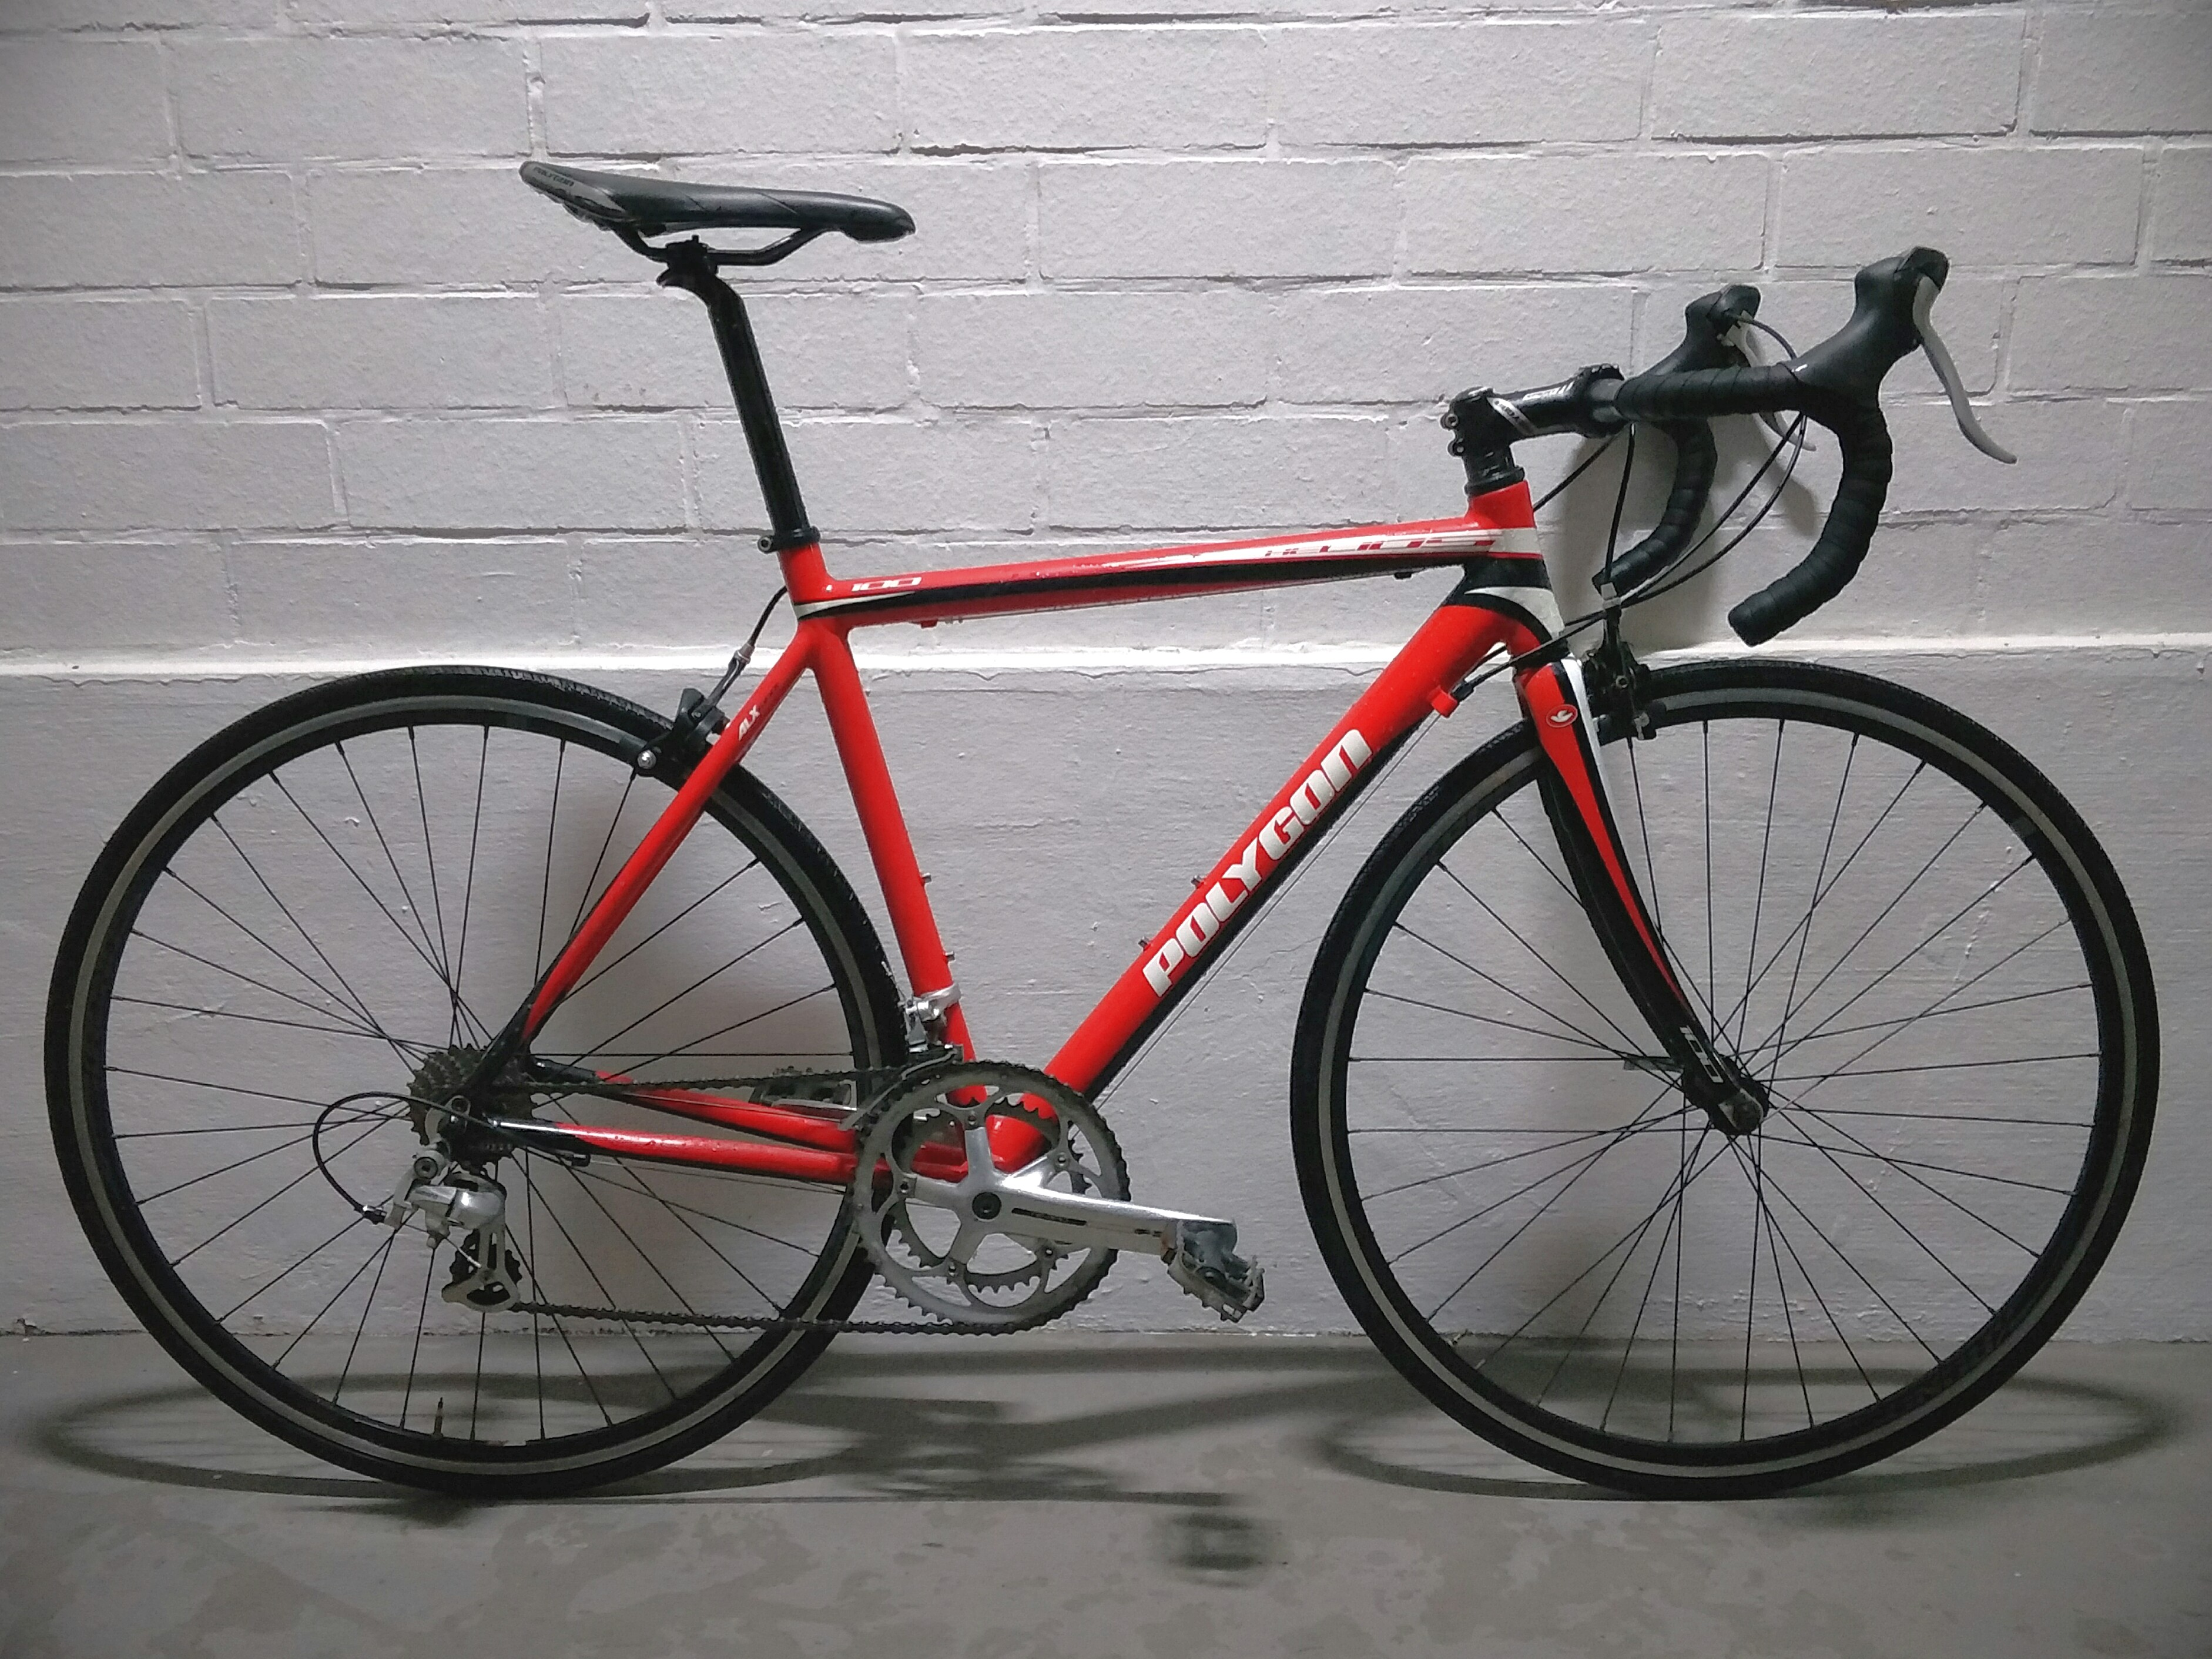 8ca6caef1bd Polygon Helios 100, Size 52, Bicycles & PMDs, Bicycles on Carousell